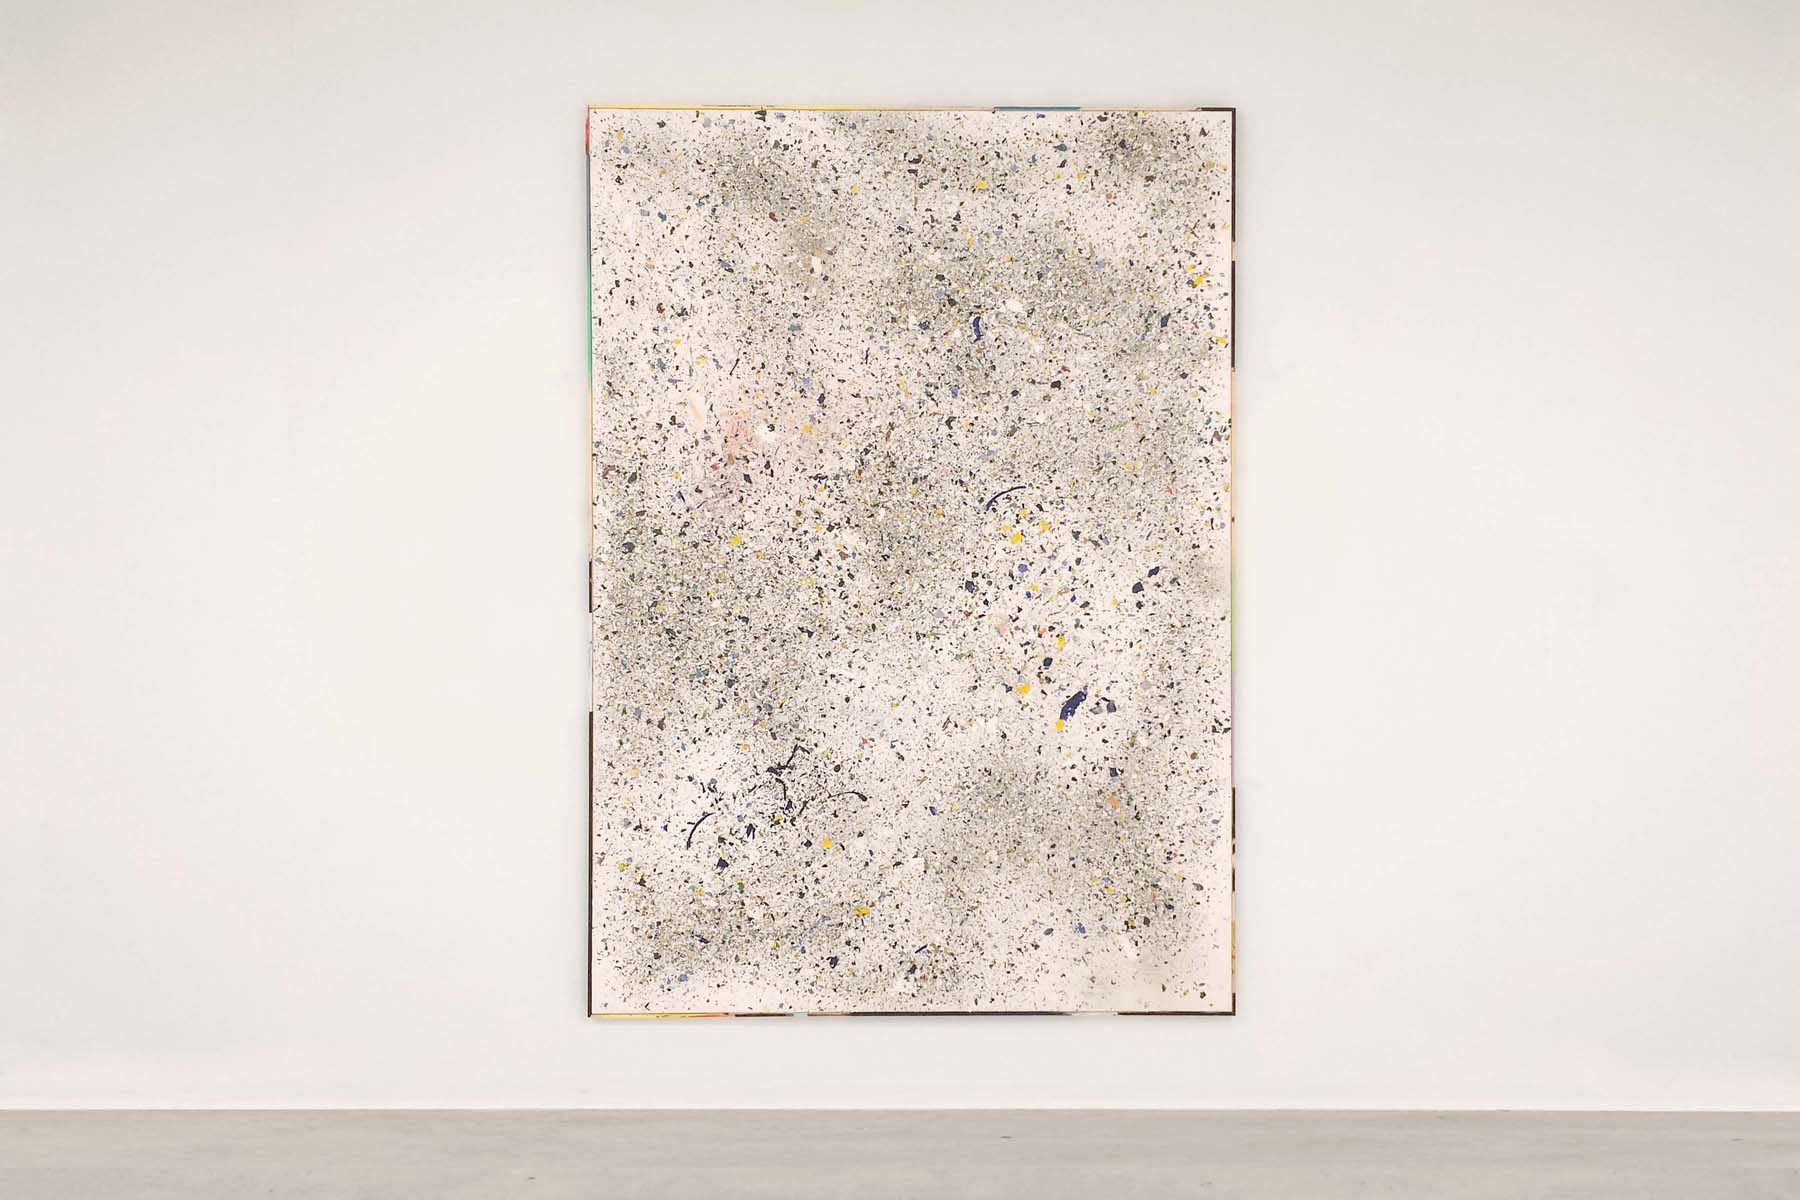 Tiziano Martini, Untitled, 2015, acrylics, sediments of monotype process, acrylic sealant and dirt of the studio on canvas, painted frame, 202 x 142 cm